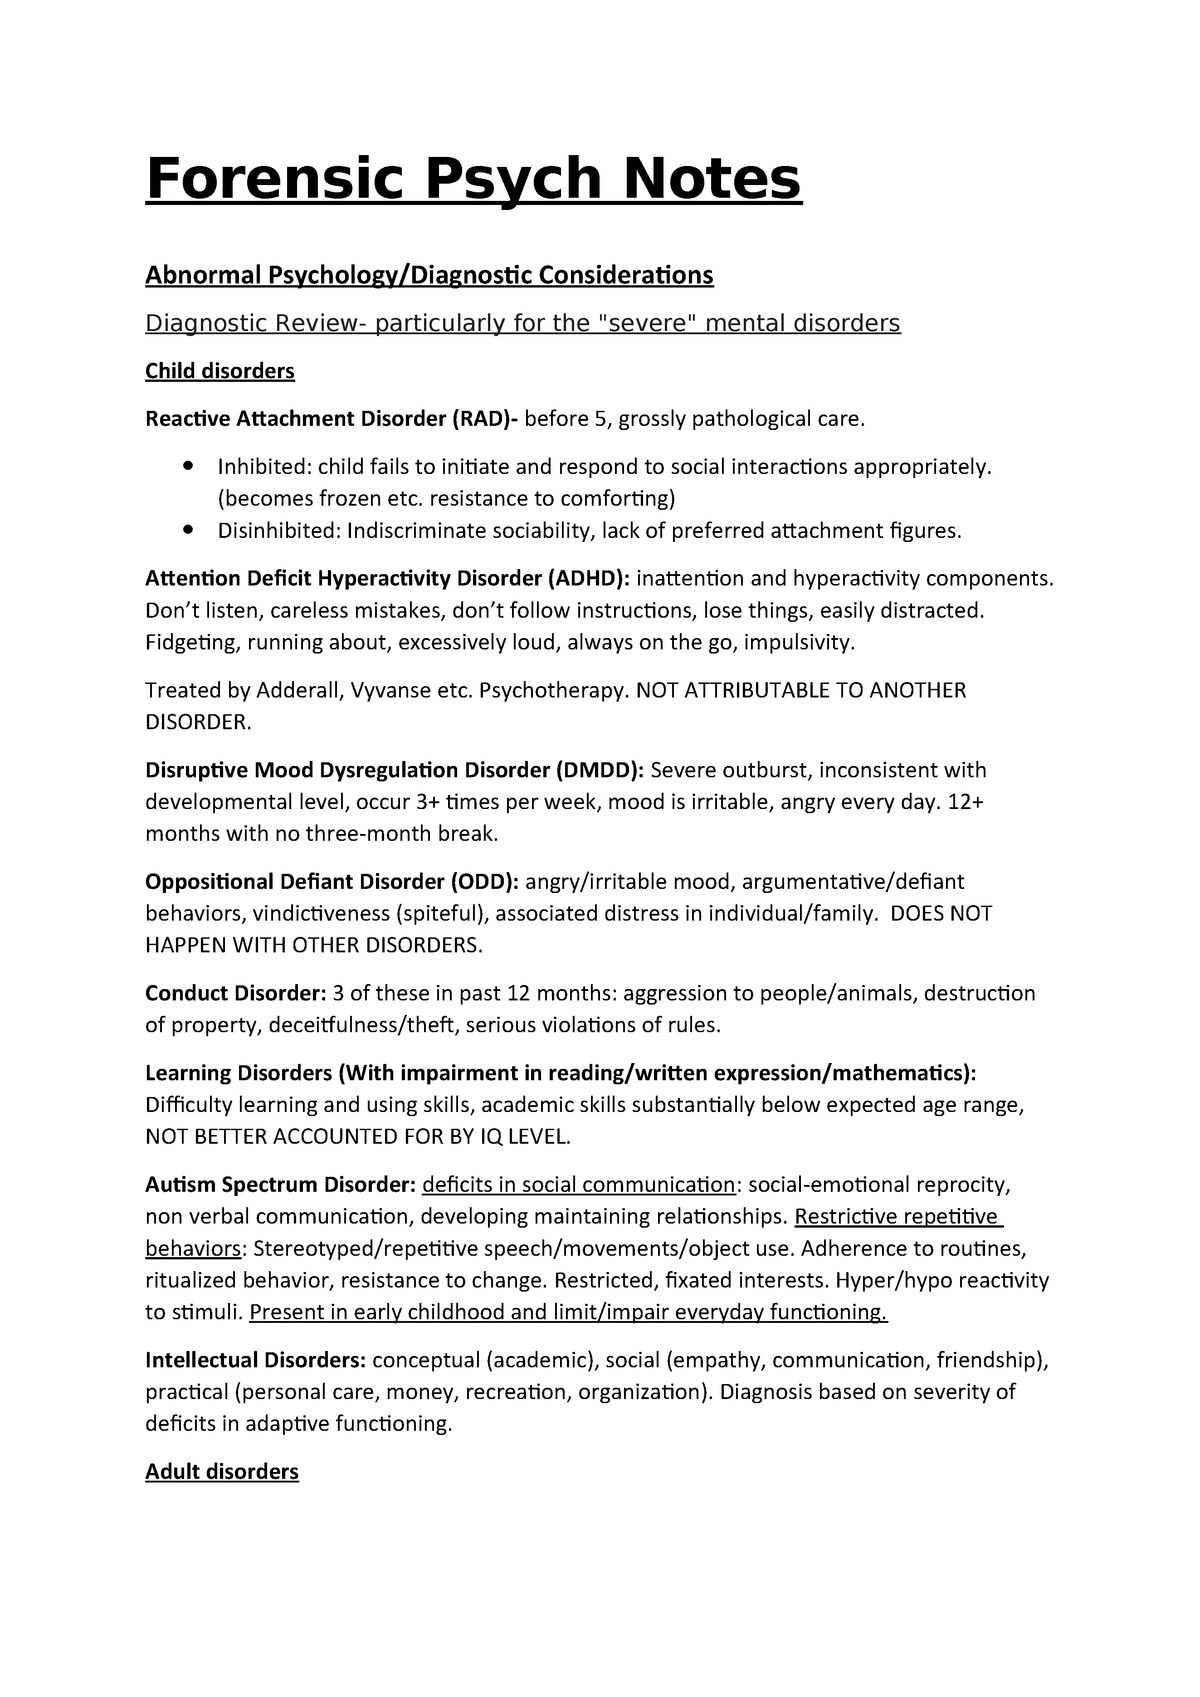 Summary notes for abnormal psych and Treatment - AS 200 202